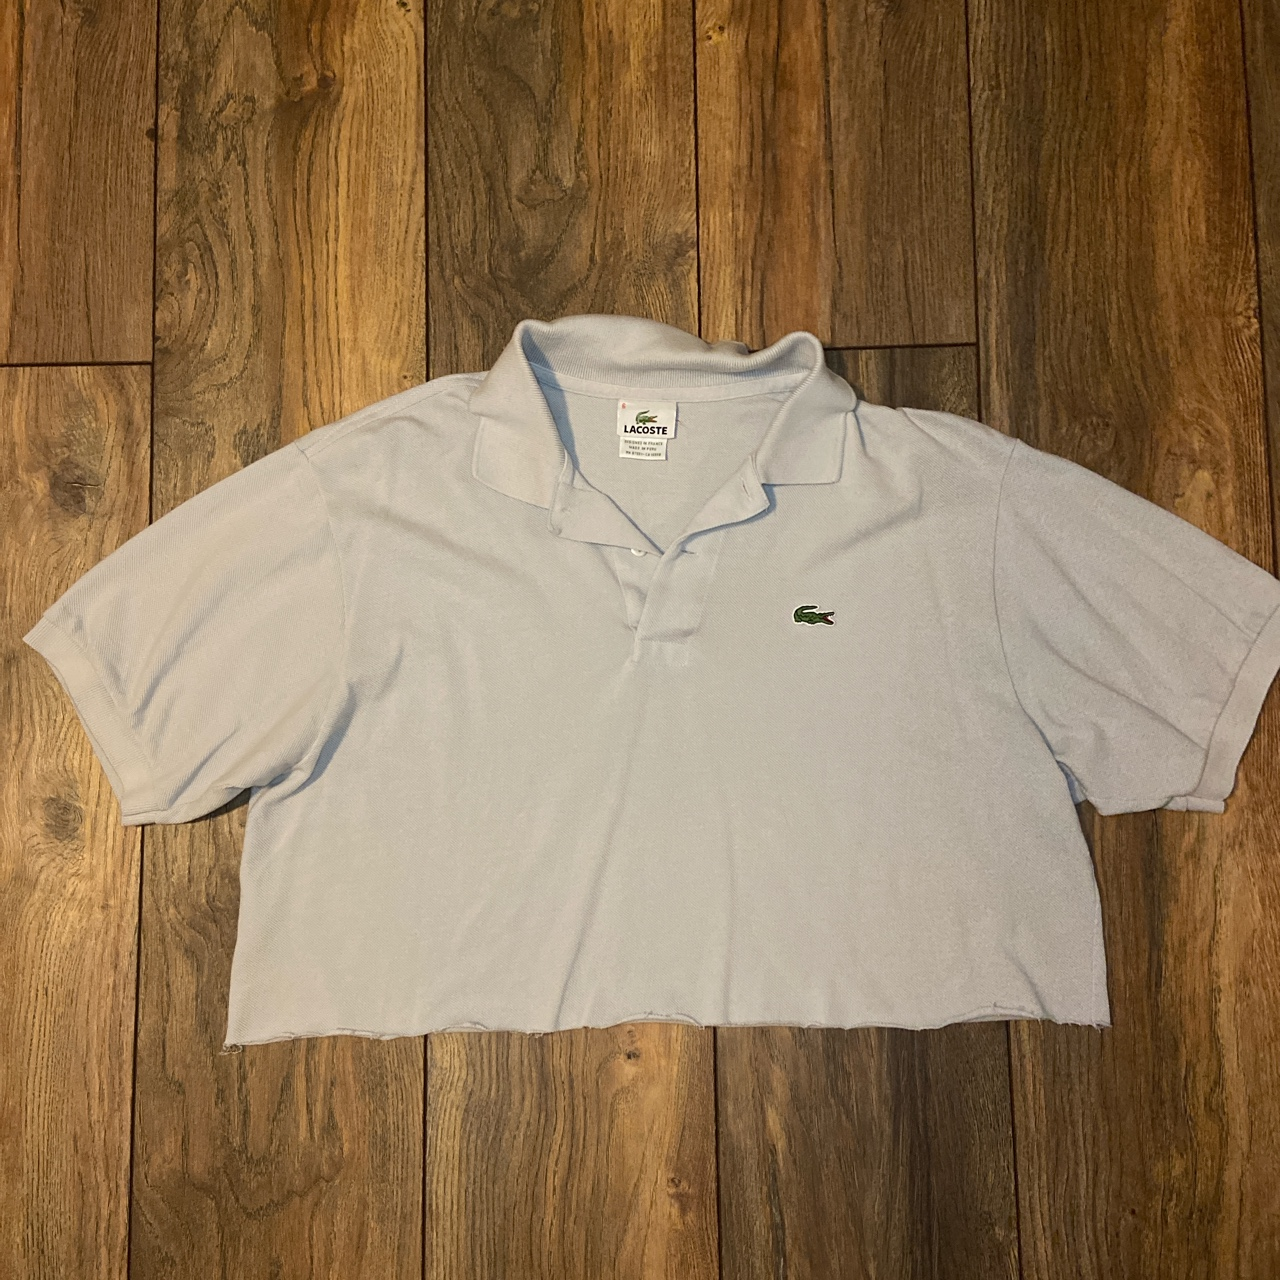 Product Image 1 - Light gray Lacoste Y2k cropped